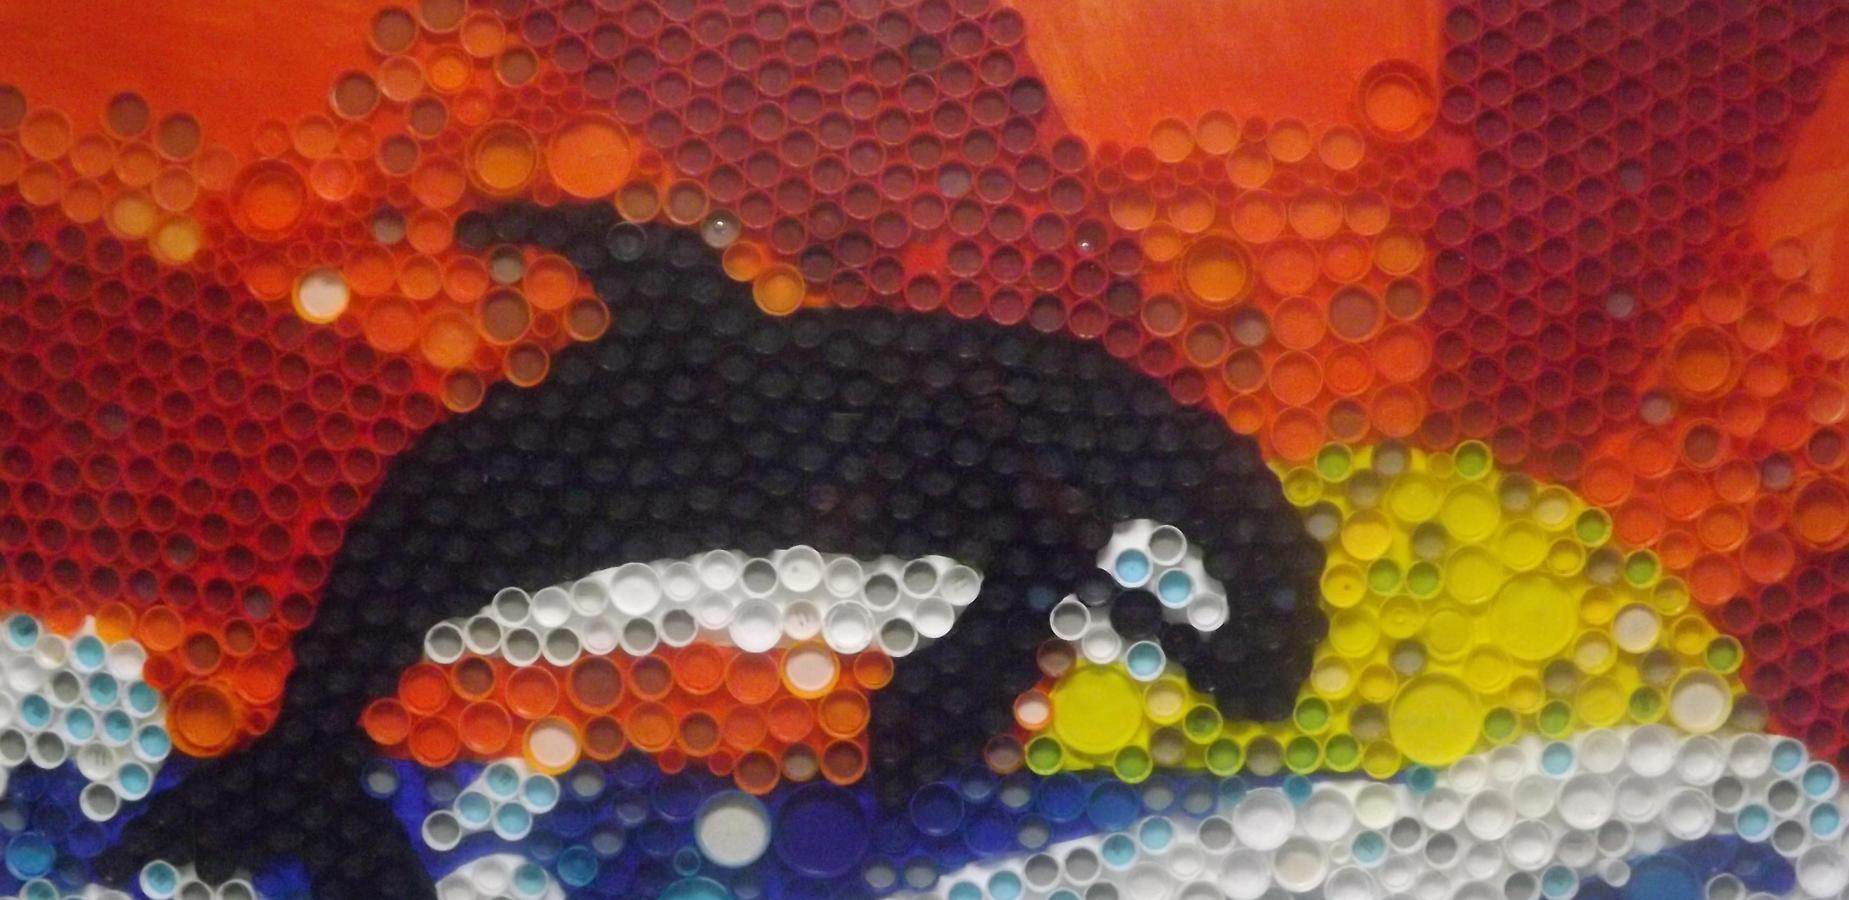 Whale art created from bottle caps